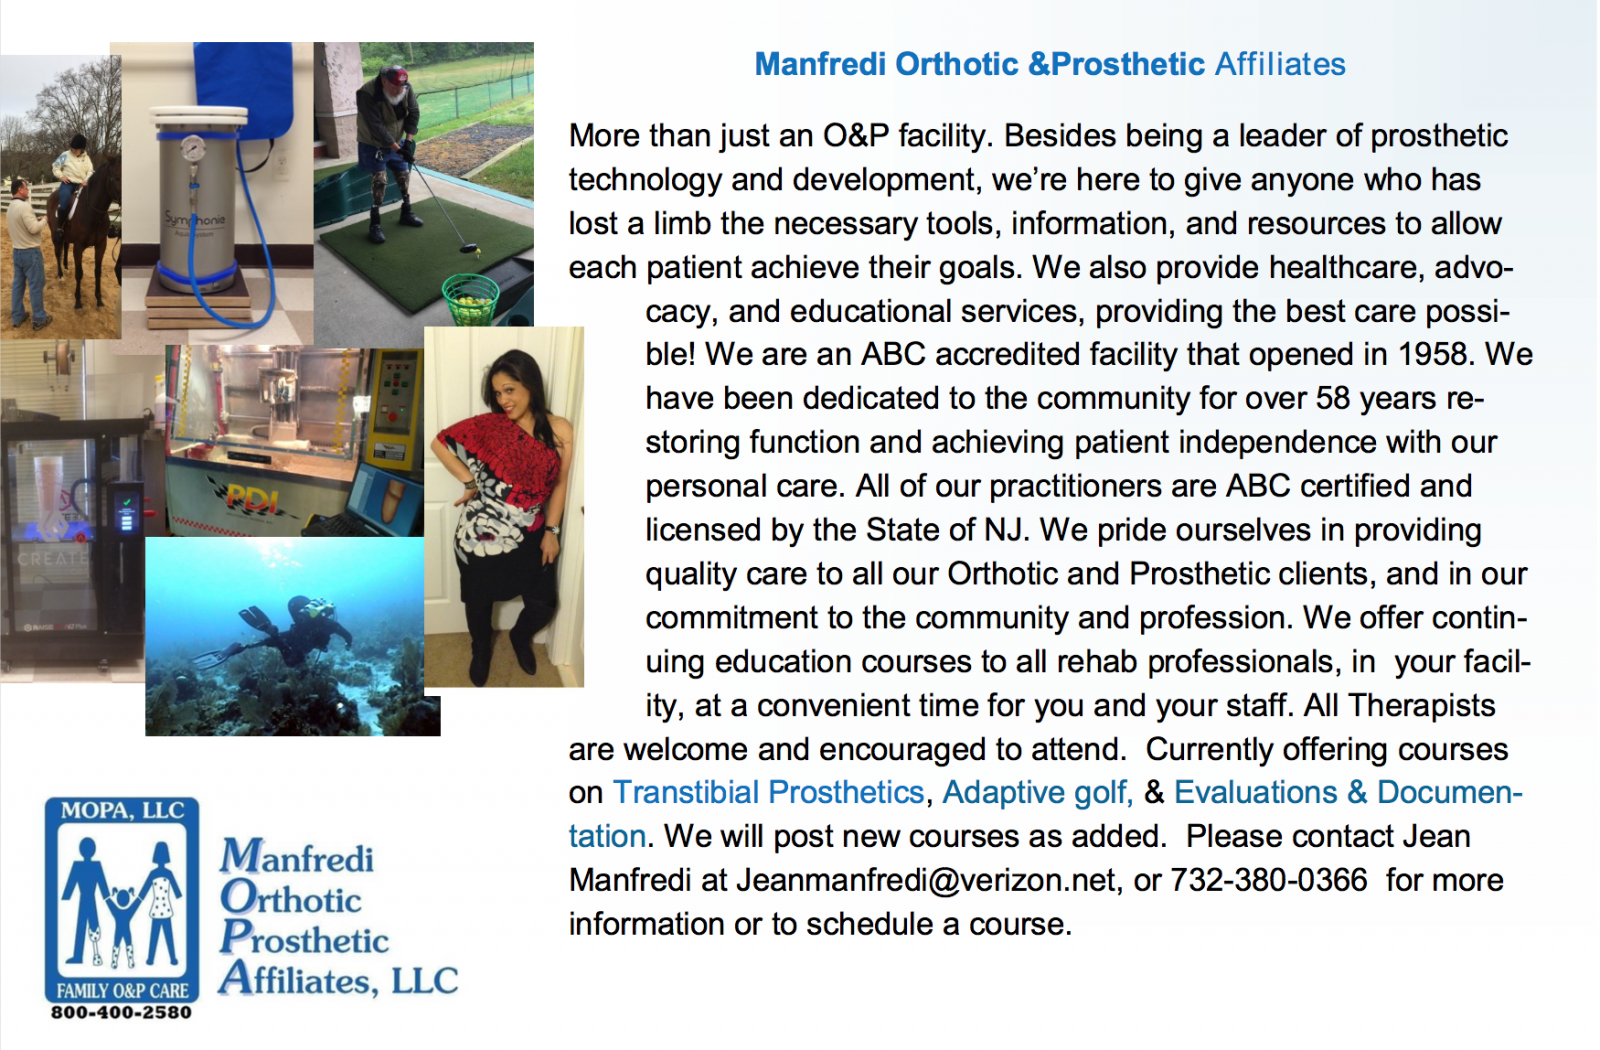 Manfredi O&P Offering a Variety of Courses